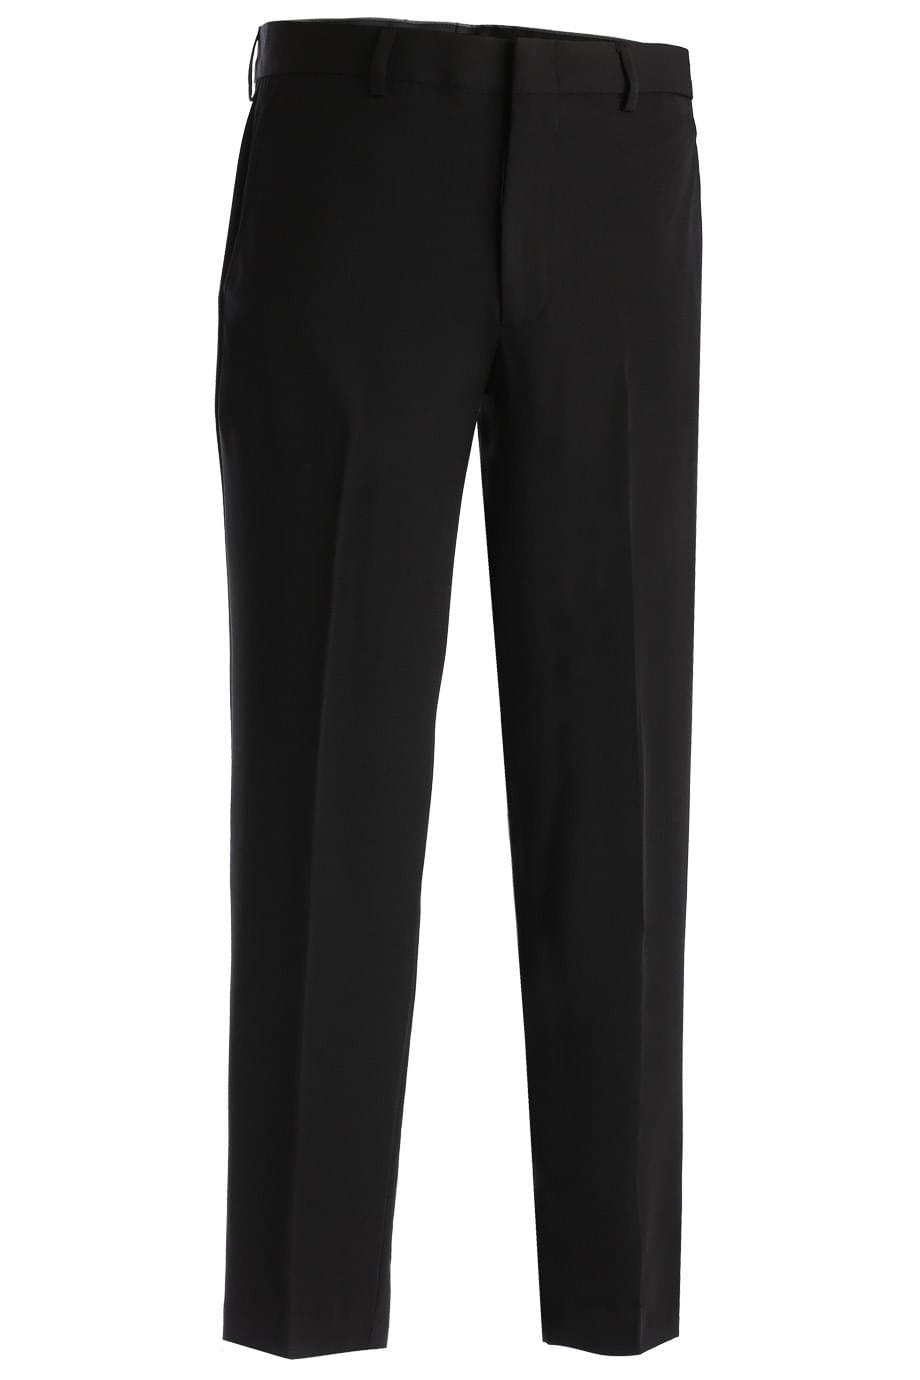 HOSPITALITY FLAT FRONT PANT